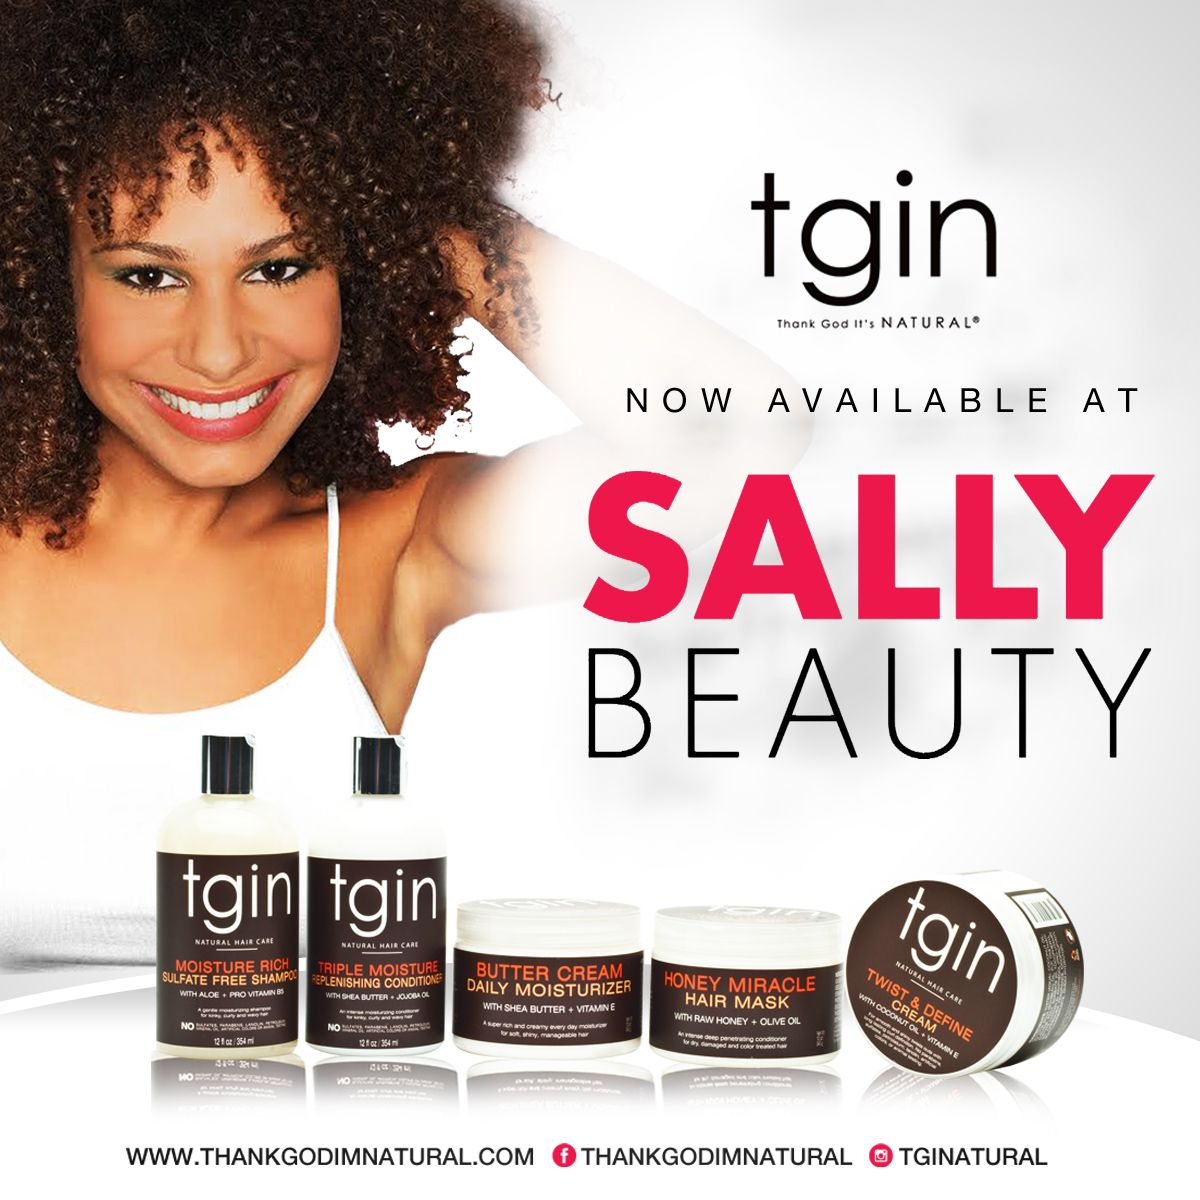 tgin Natural Hair Products for Dry Hair Now in 500+ Sally